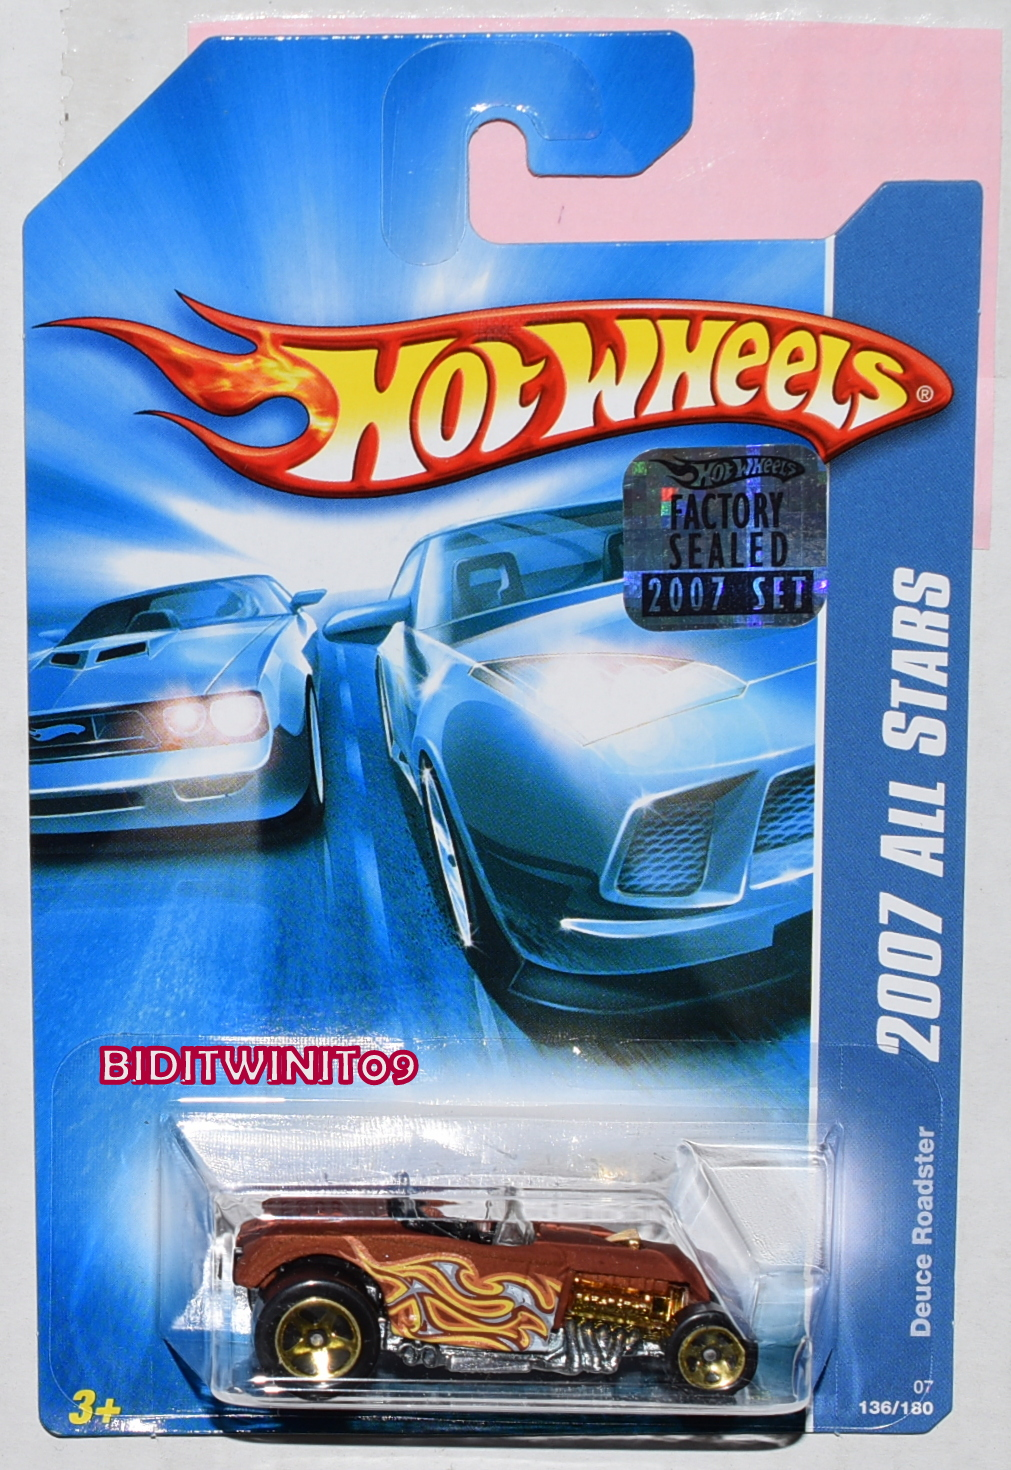 HOT WHEELS 2007 ALL STARS DEUCE ROADSTER FACTORY SEALED